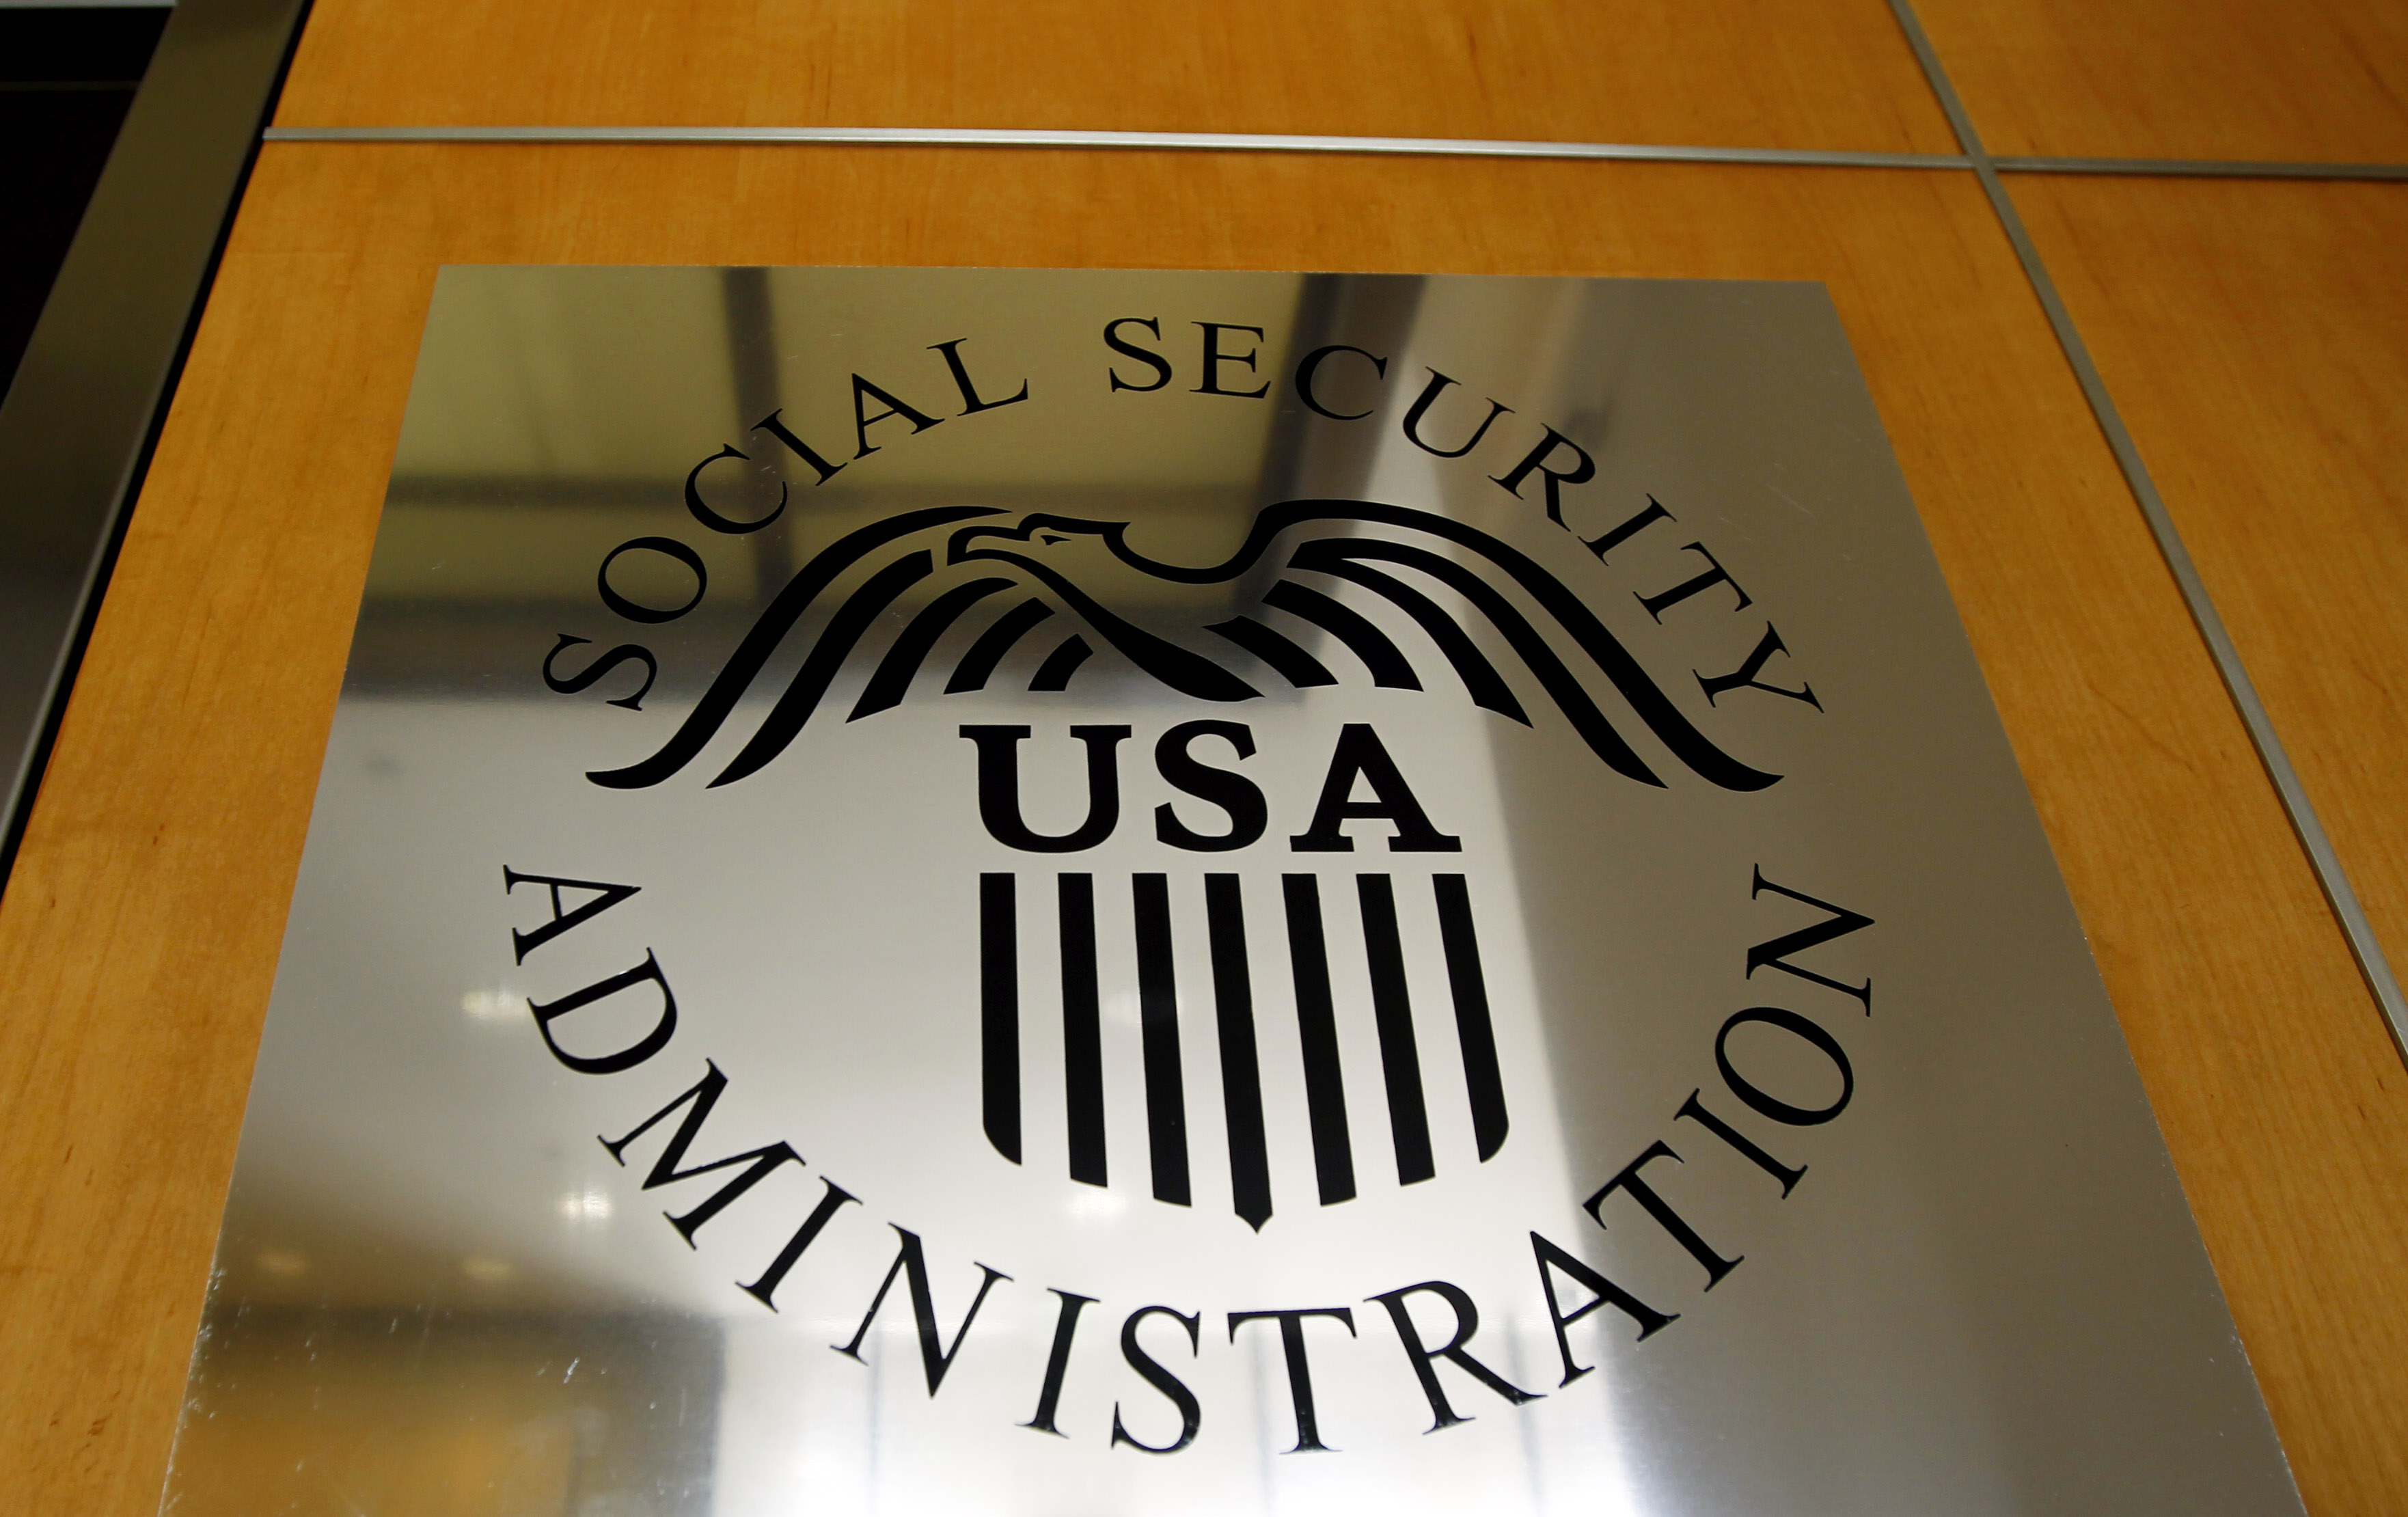 This is a 2011 file photo of a sign for the Social Security Administration in Los Angeles. This year, the Trump Administration reinstated the practice of notifying employers of discrepancies with the social security numbers of their employees.